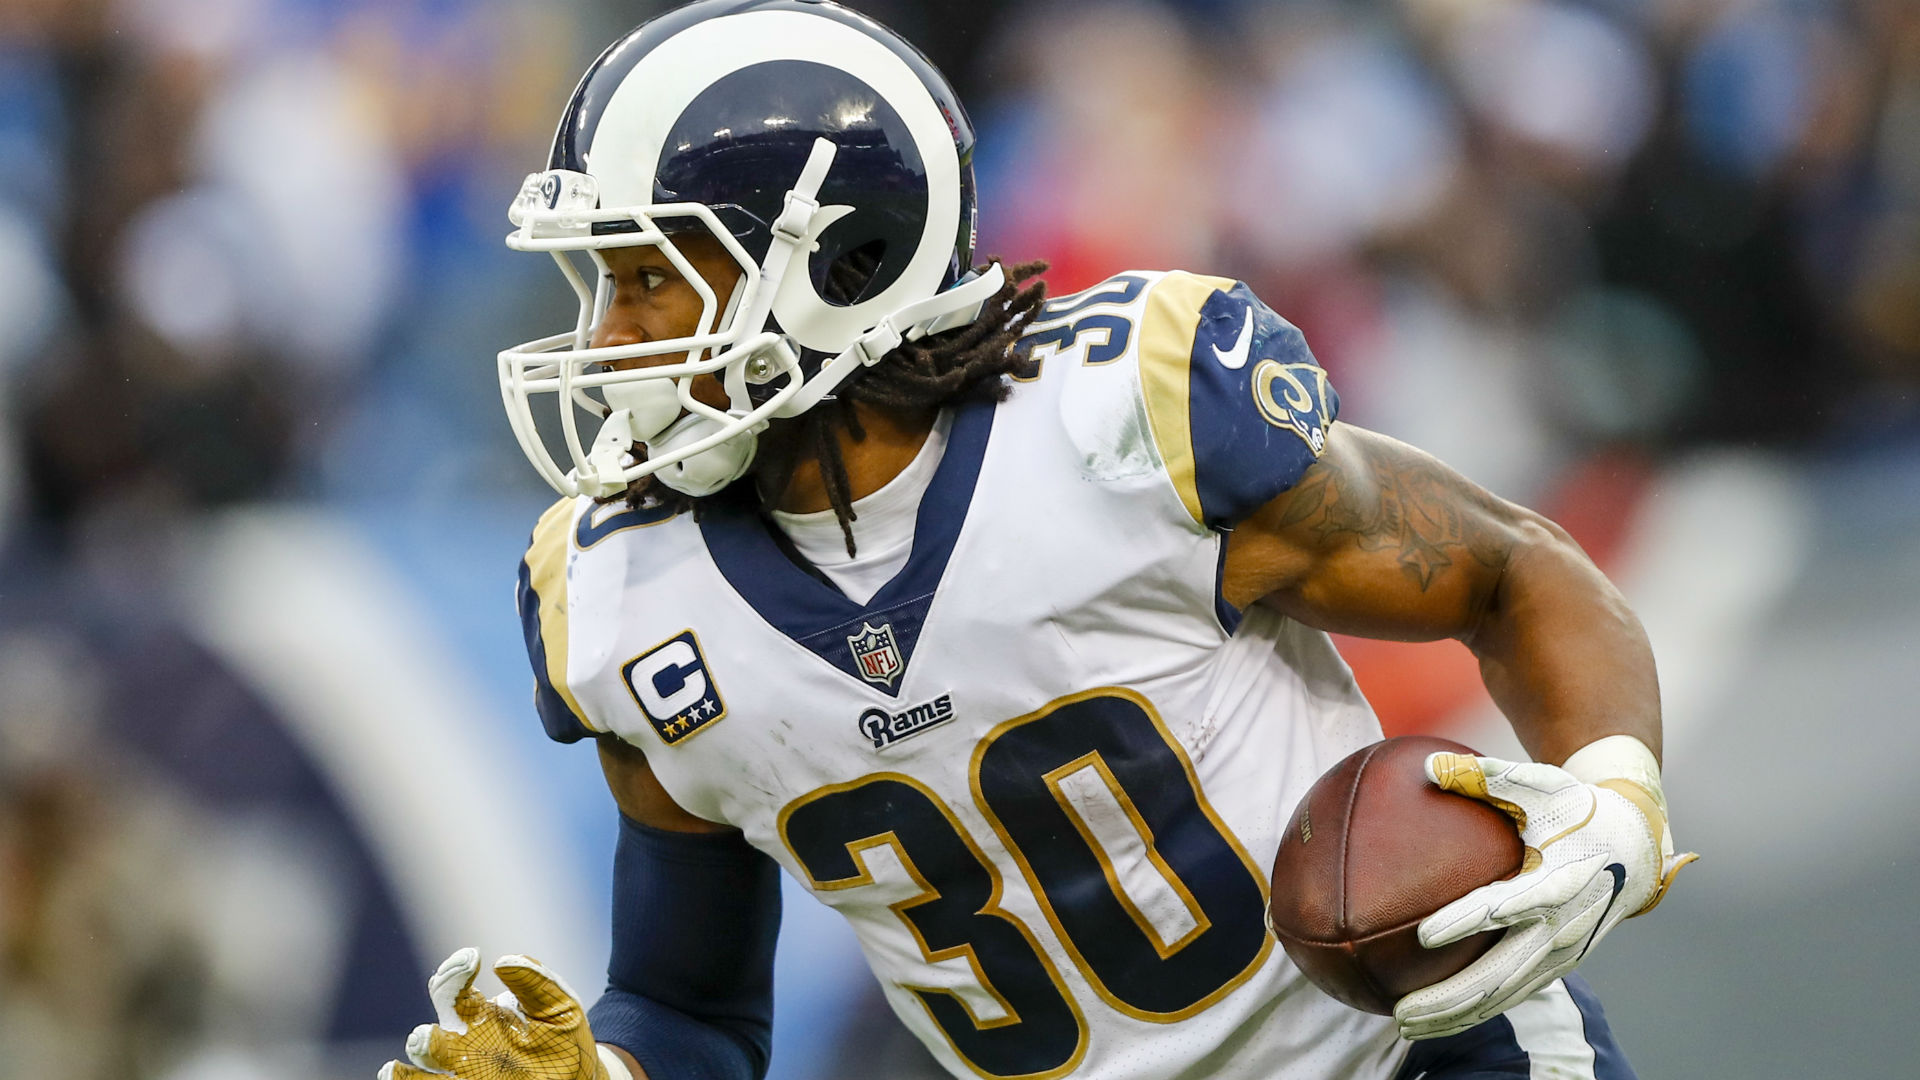 Gurley-Todd-USNews-Getty-FTR